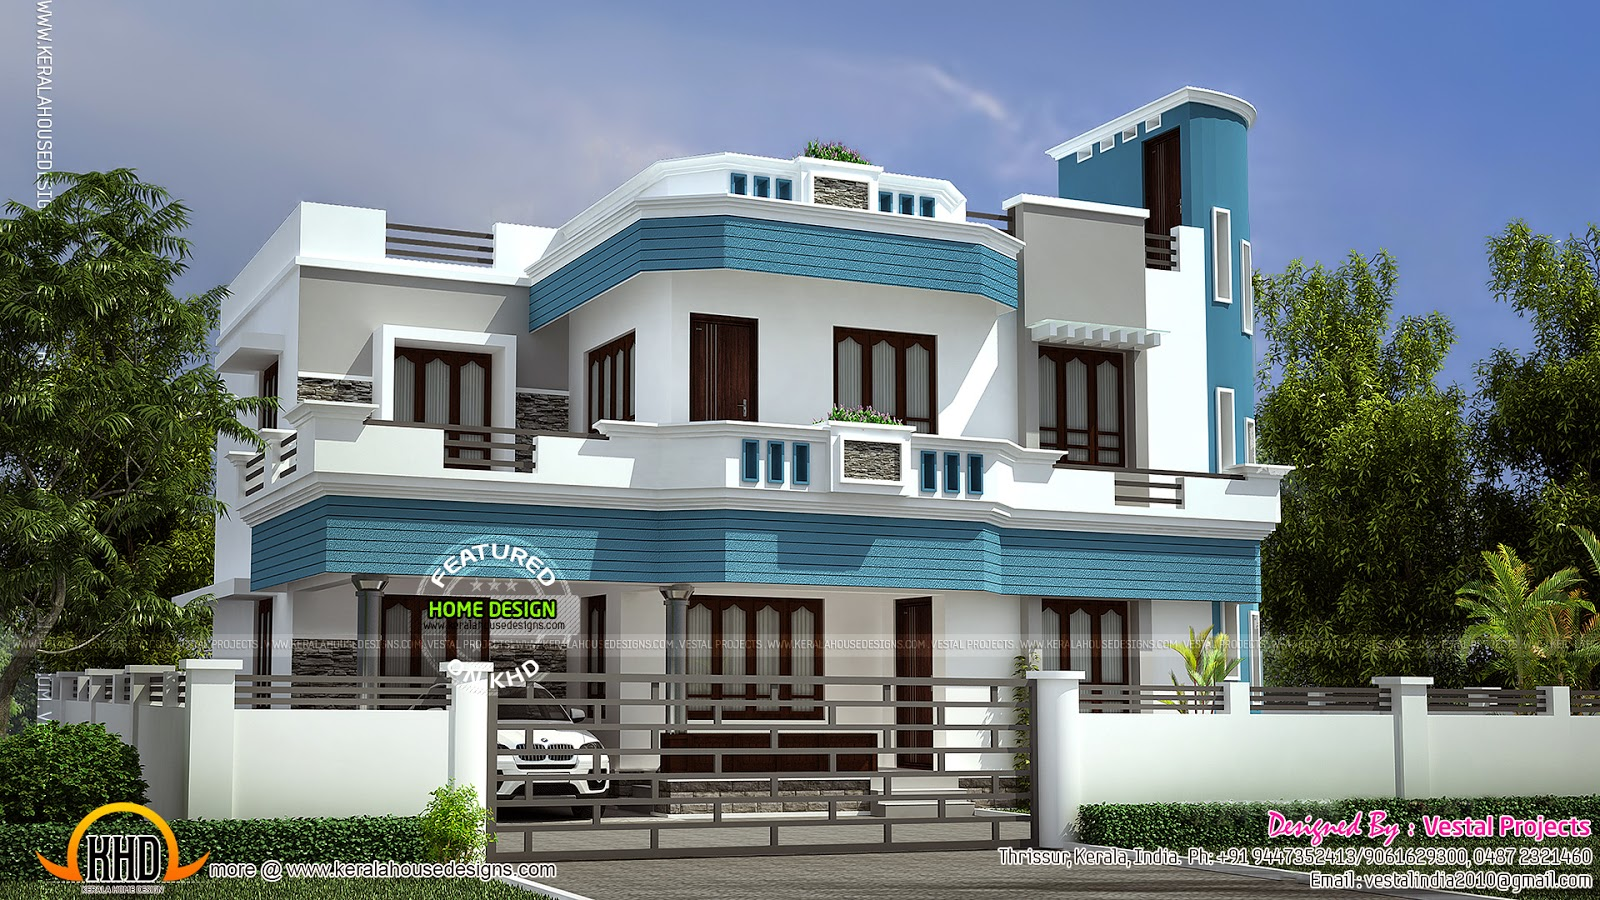 Awesome house by vestal projects kerala home design and for House and design